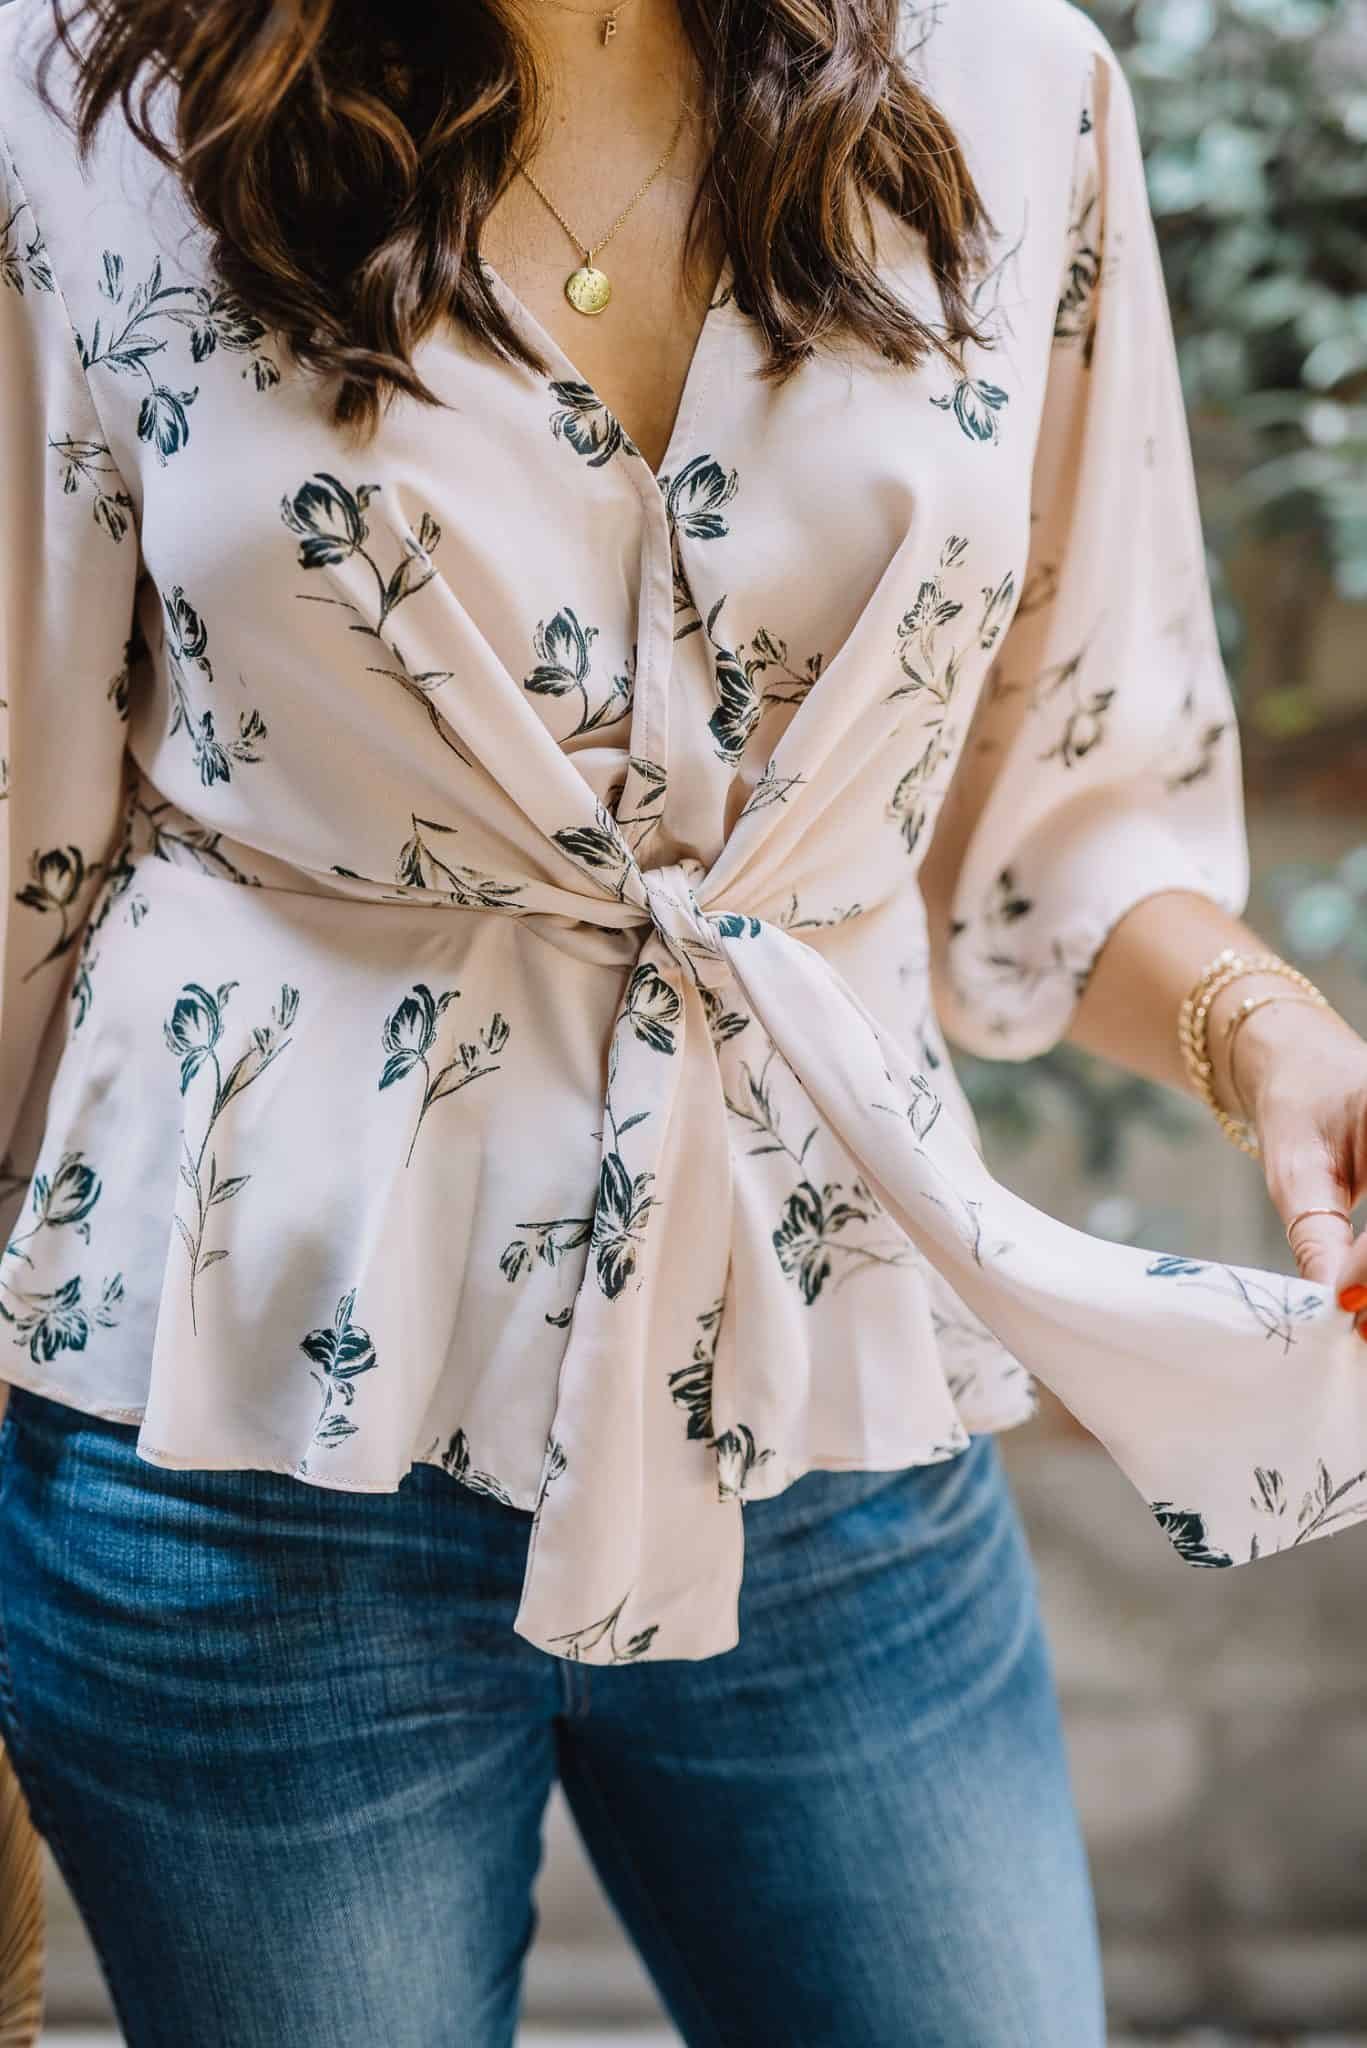 Details from a printed wrap top